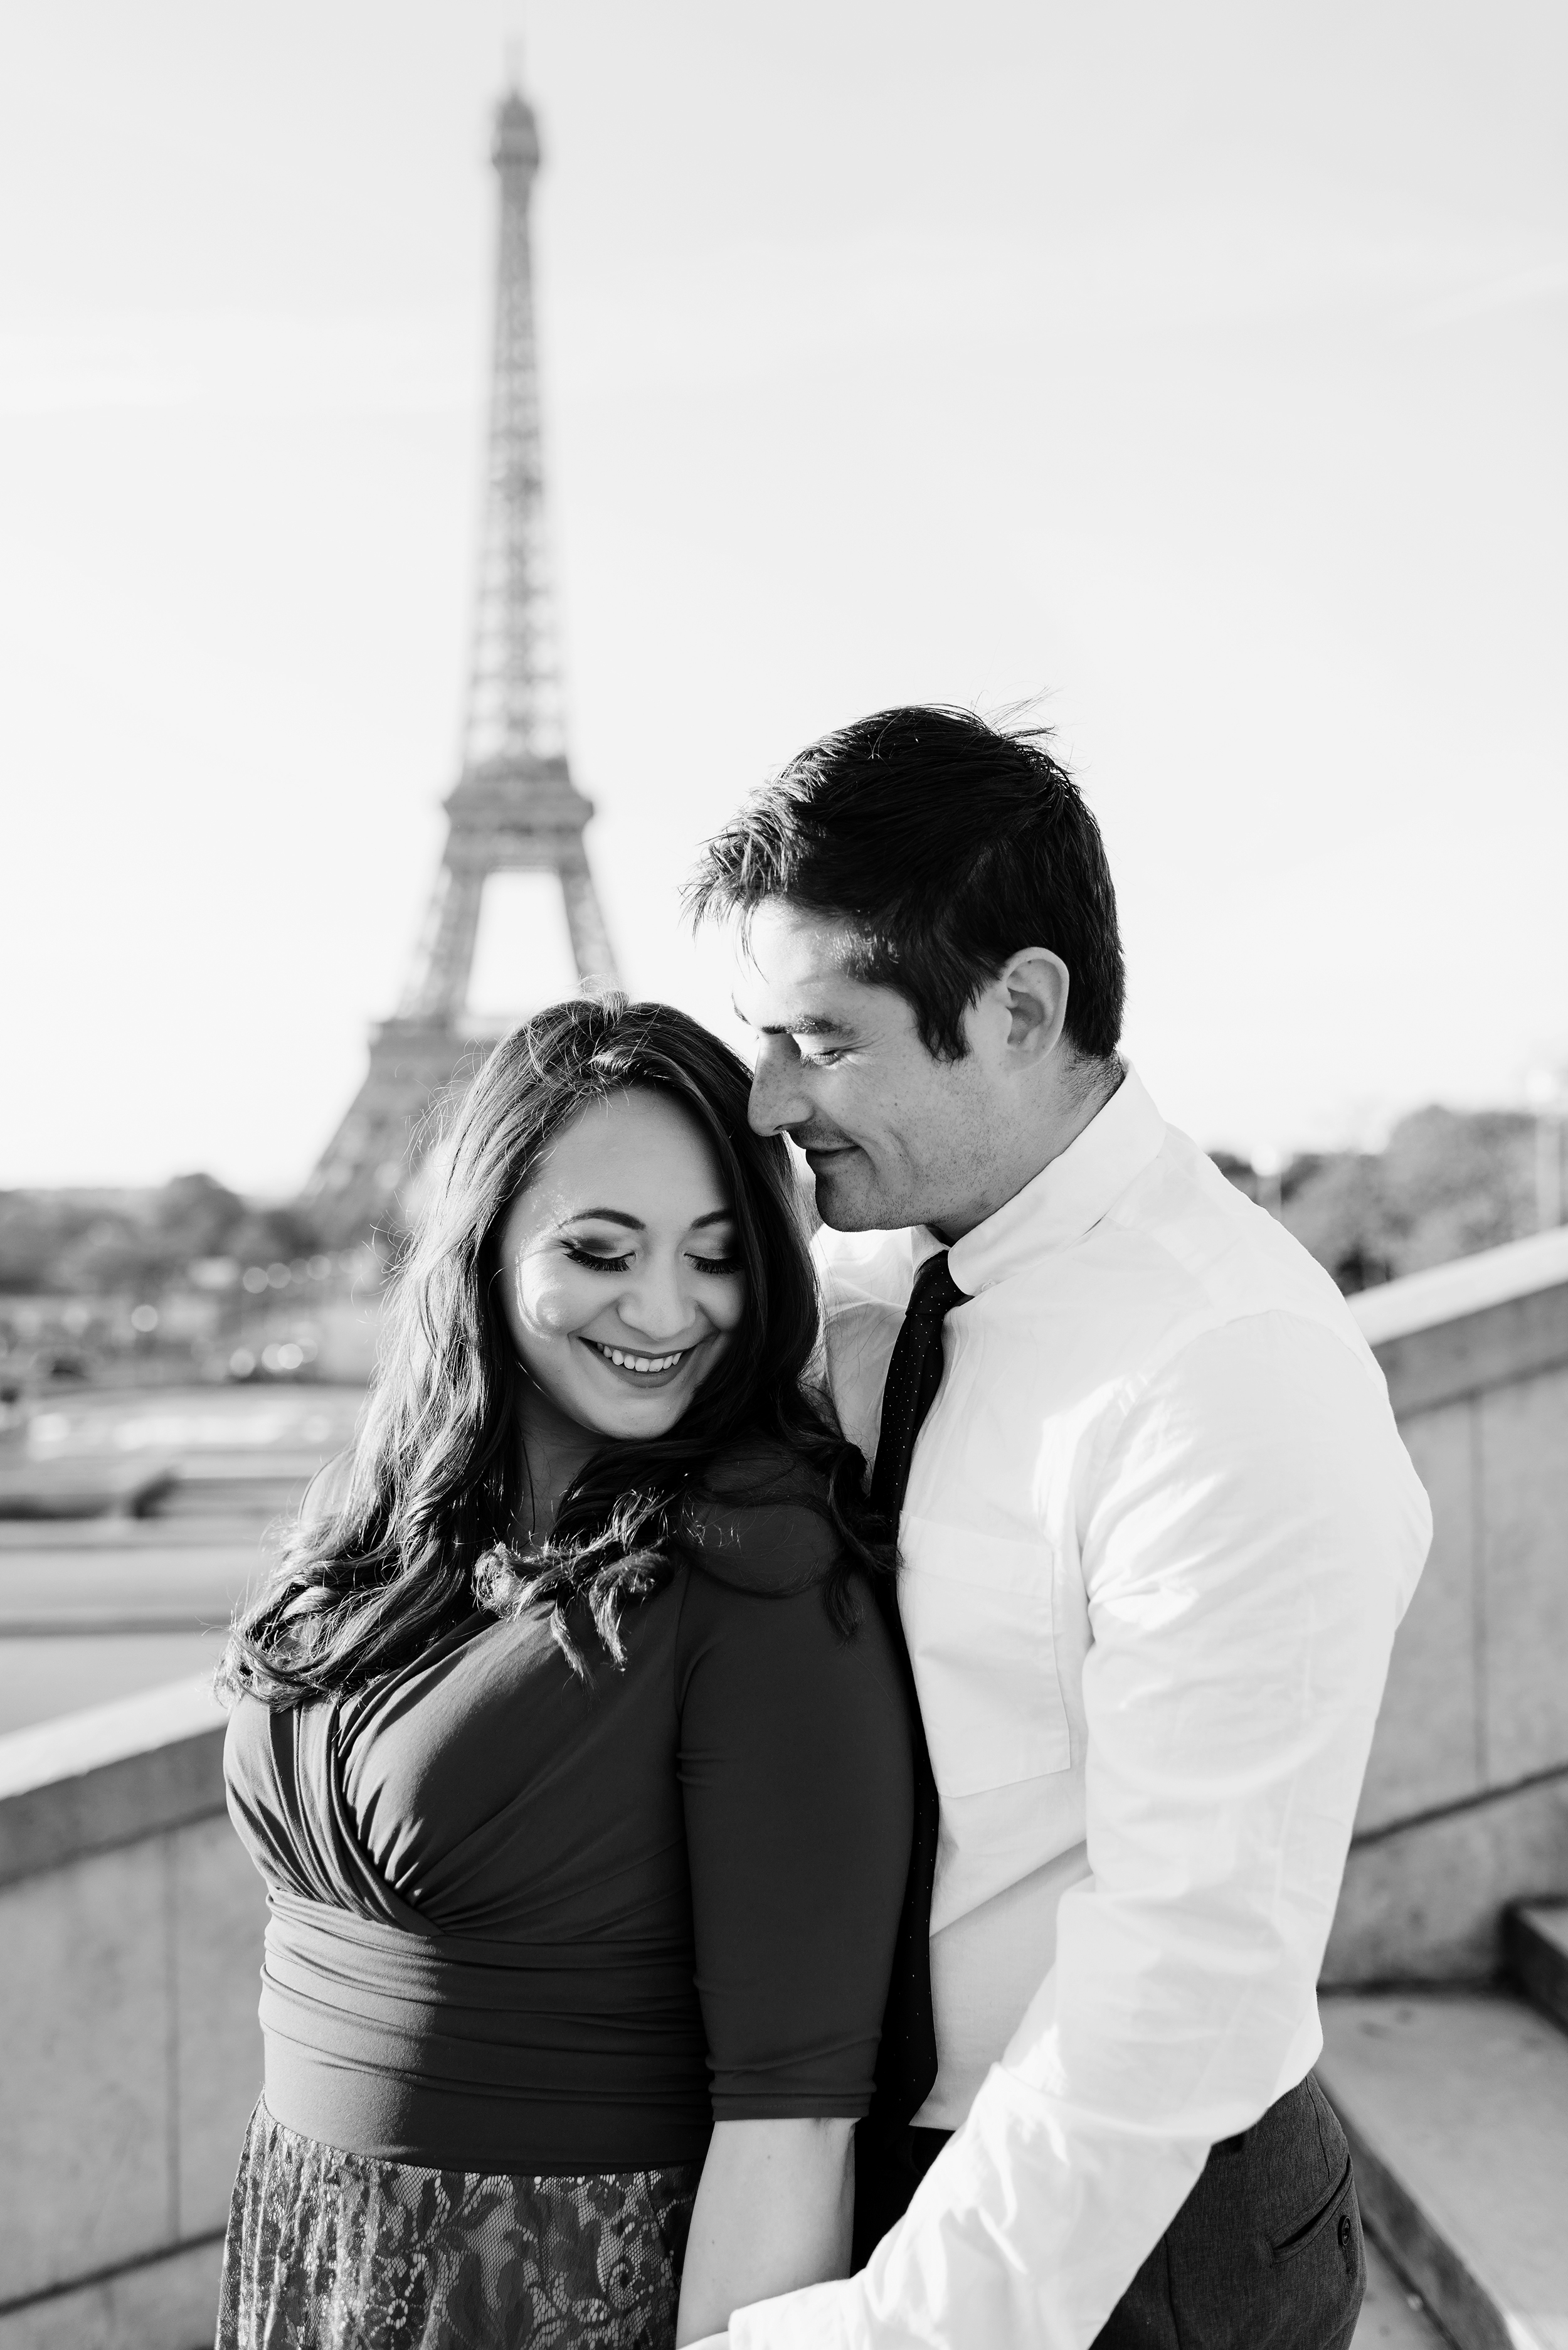 Couple-photoshoot-Anniversary-Paris-Eiffel-Tower-Trocadero044.jpg